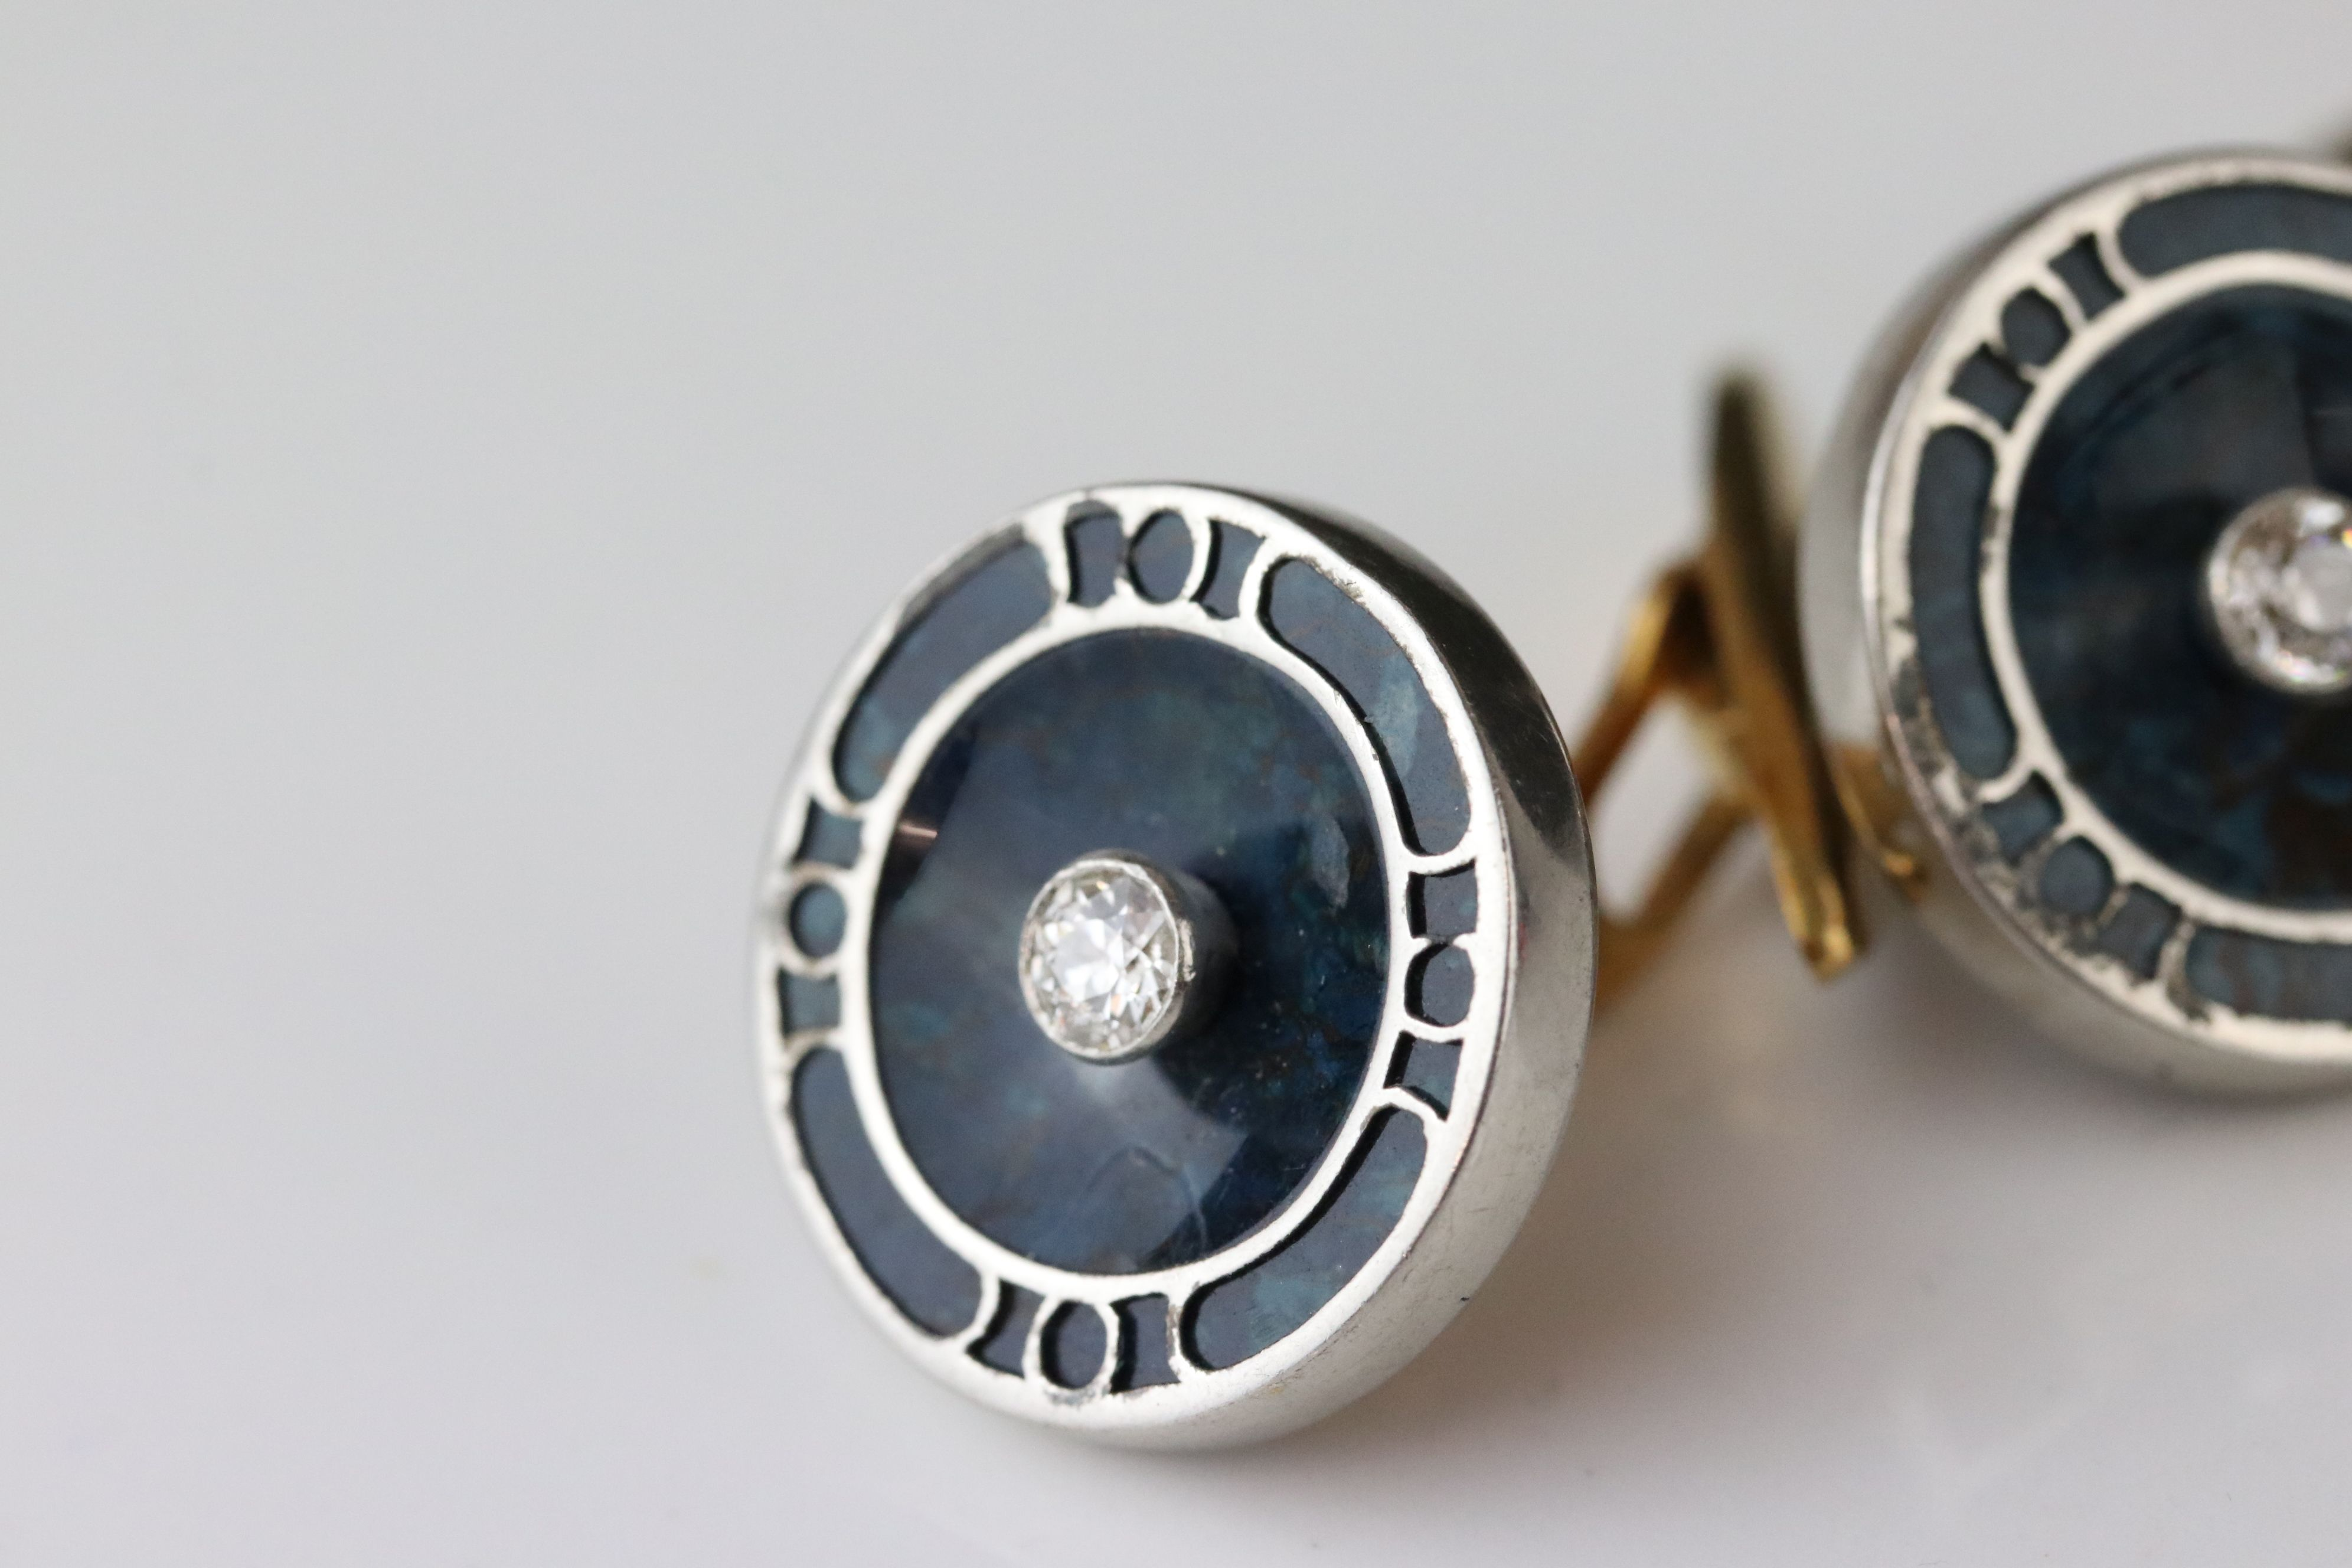 Pair of diamond and serpentine 18ct yellow and white gold cufflinks, small round old cut diamond - Image 2 of 4